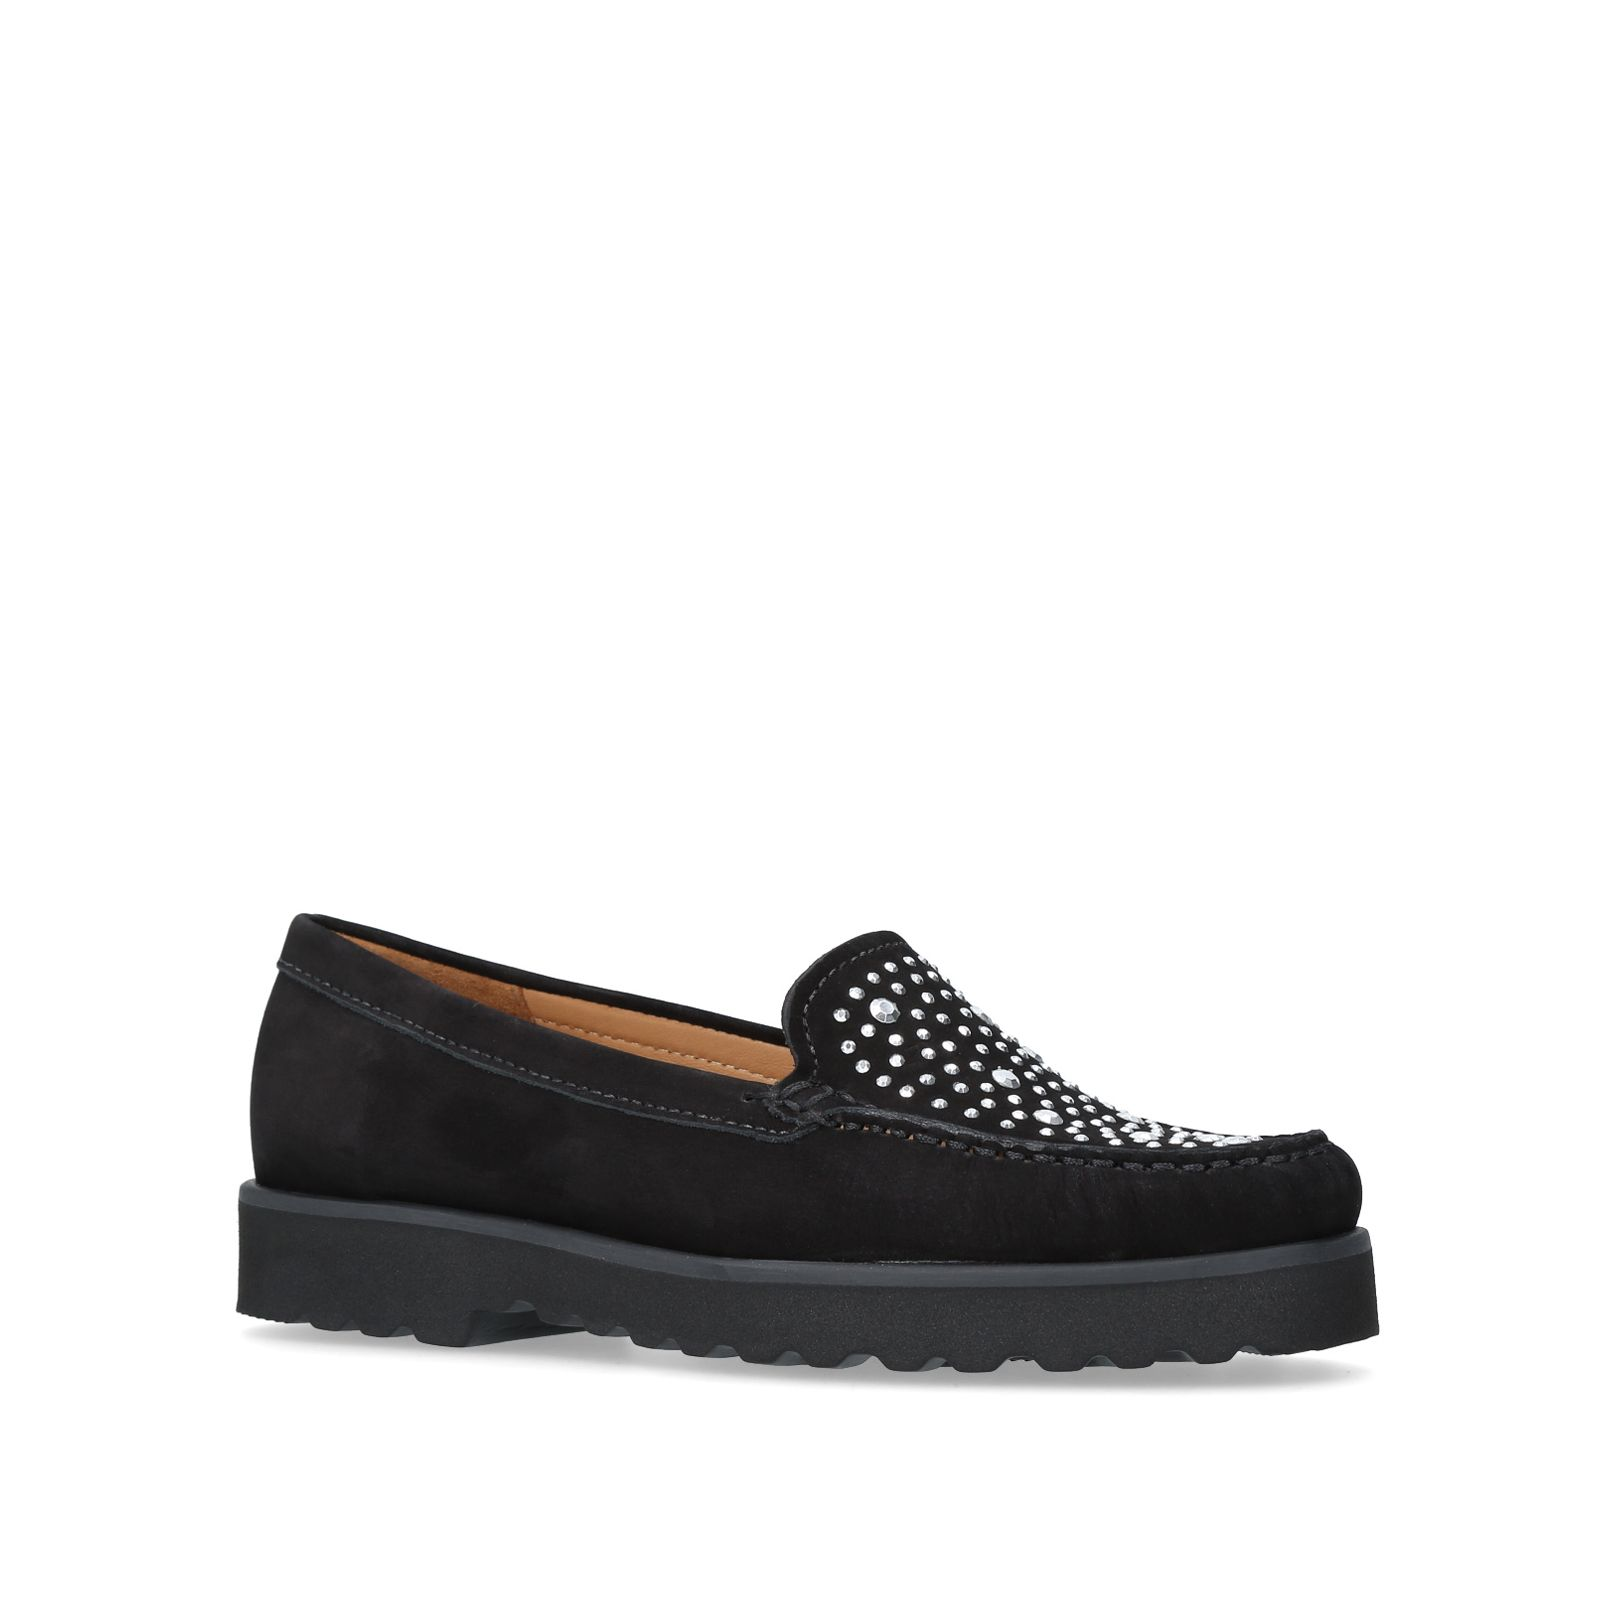 Carvela Comfort Camille loafers, Black